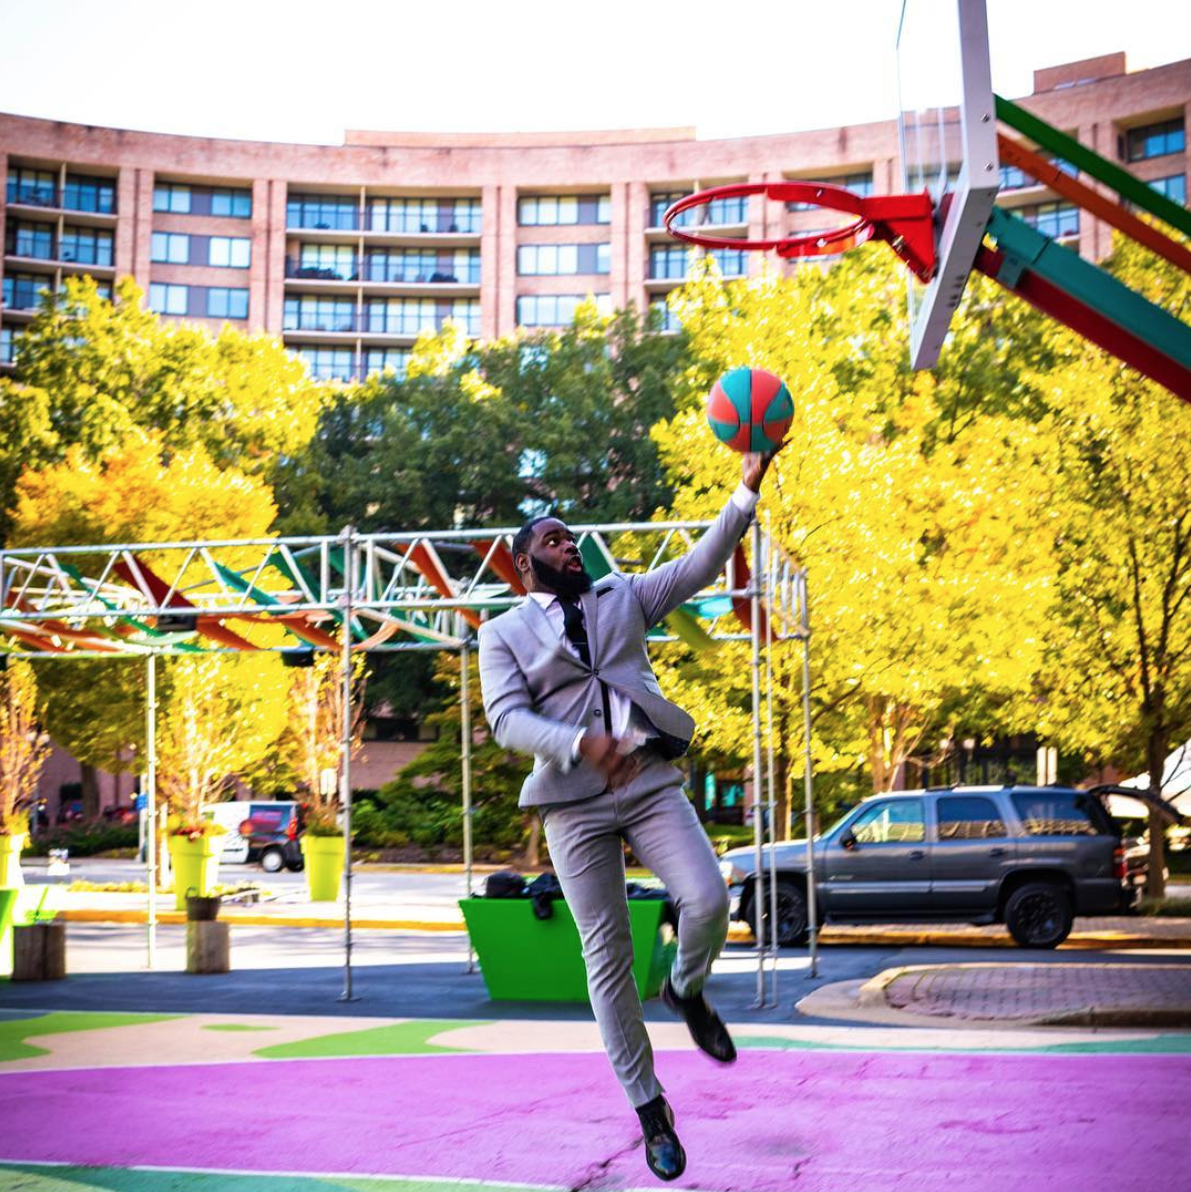 And yes, anyone can play hoops on their colorful basketball courts. (Image via @mrmoorestyle)